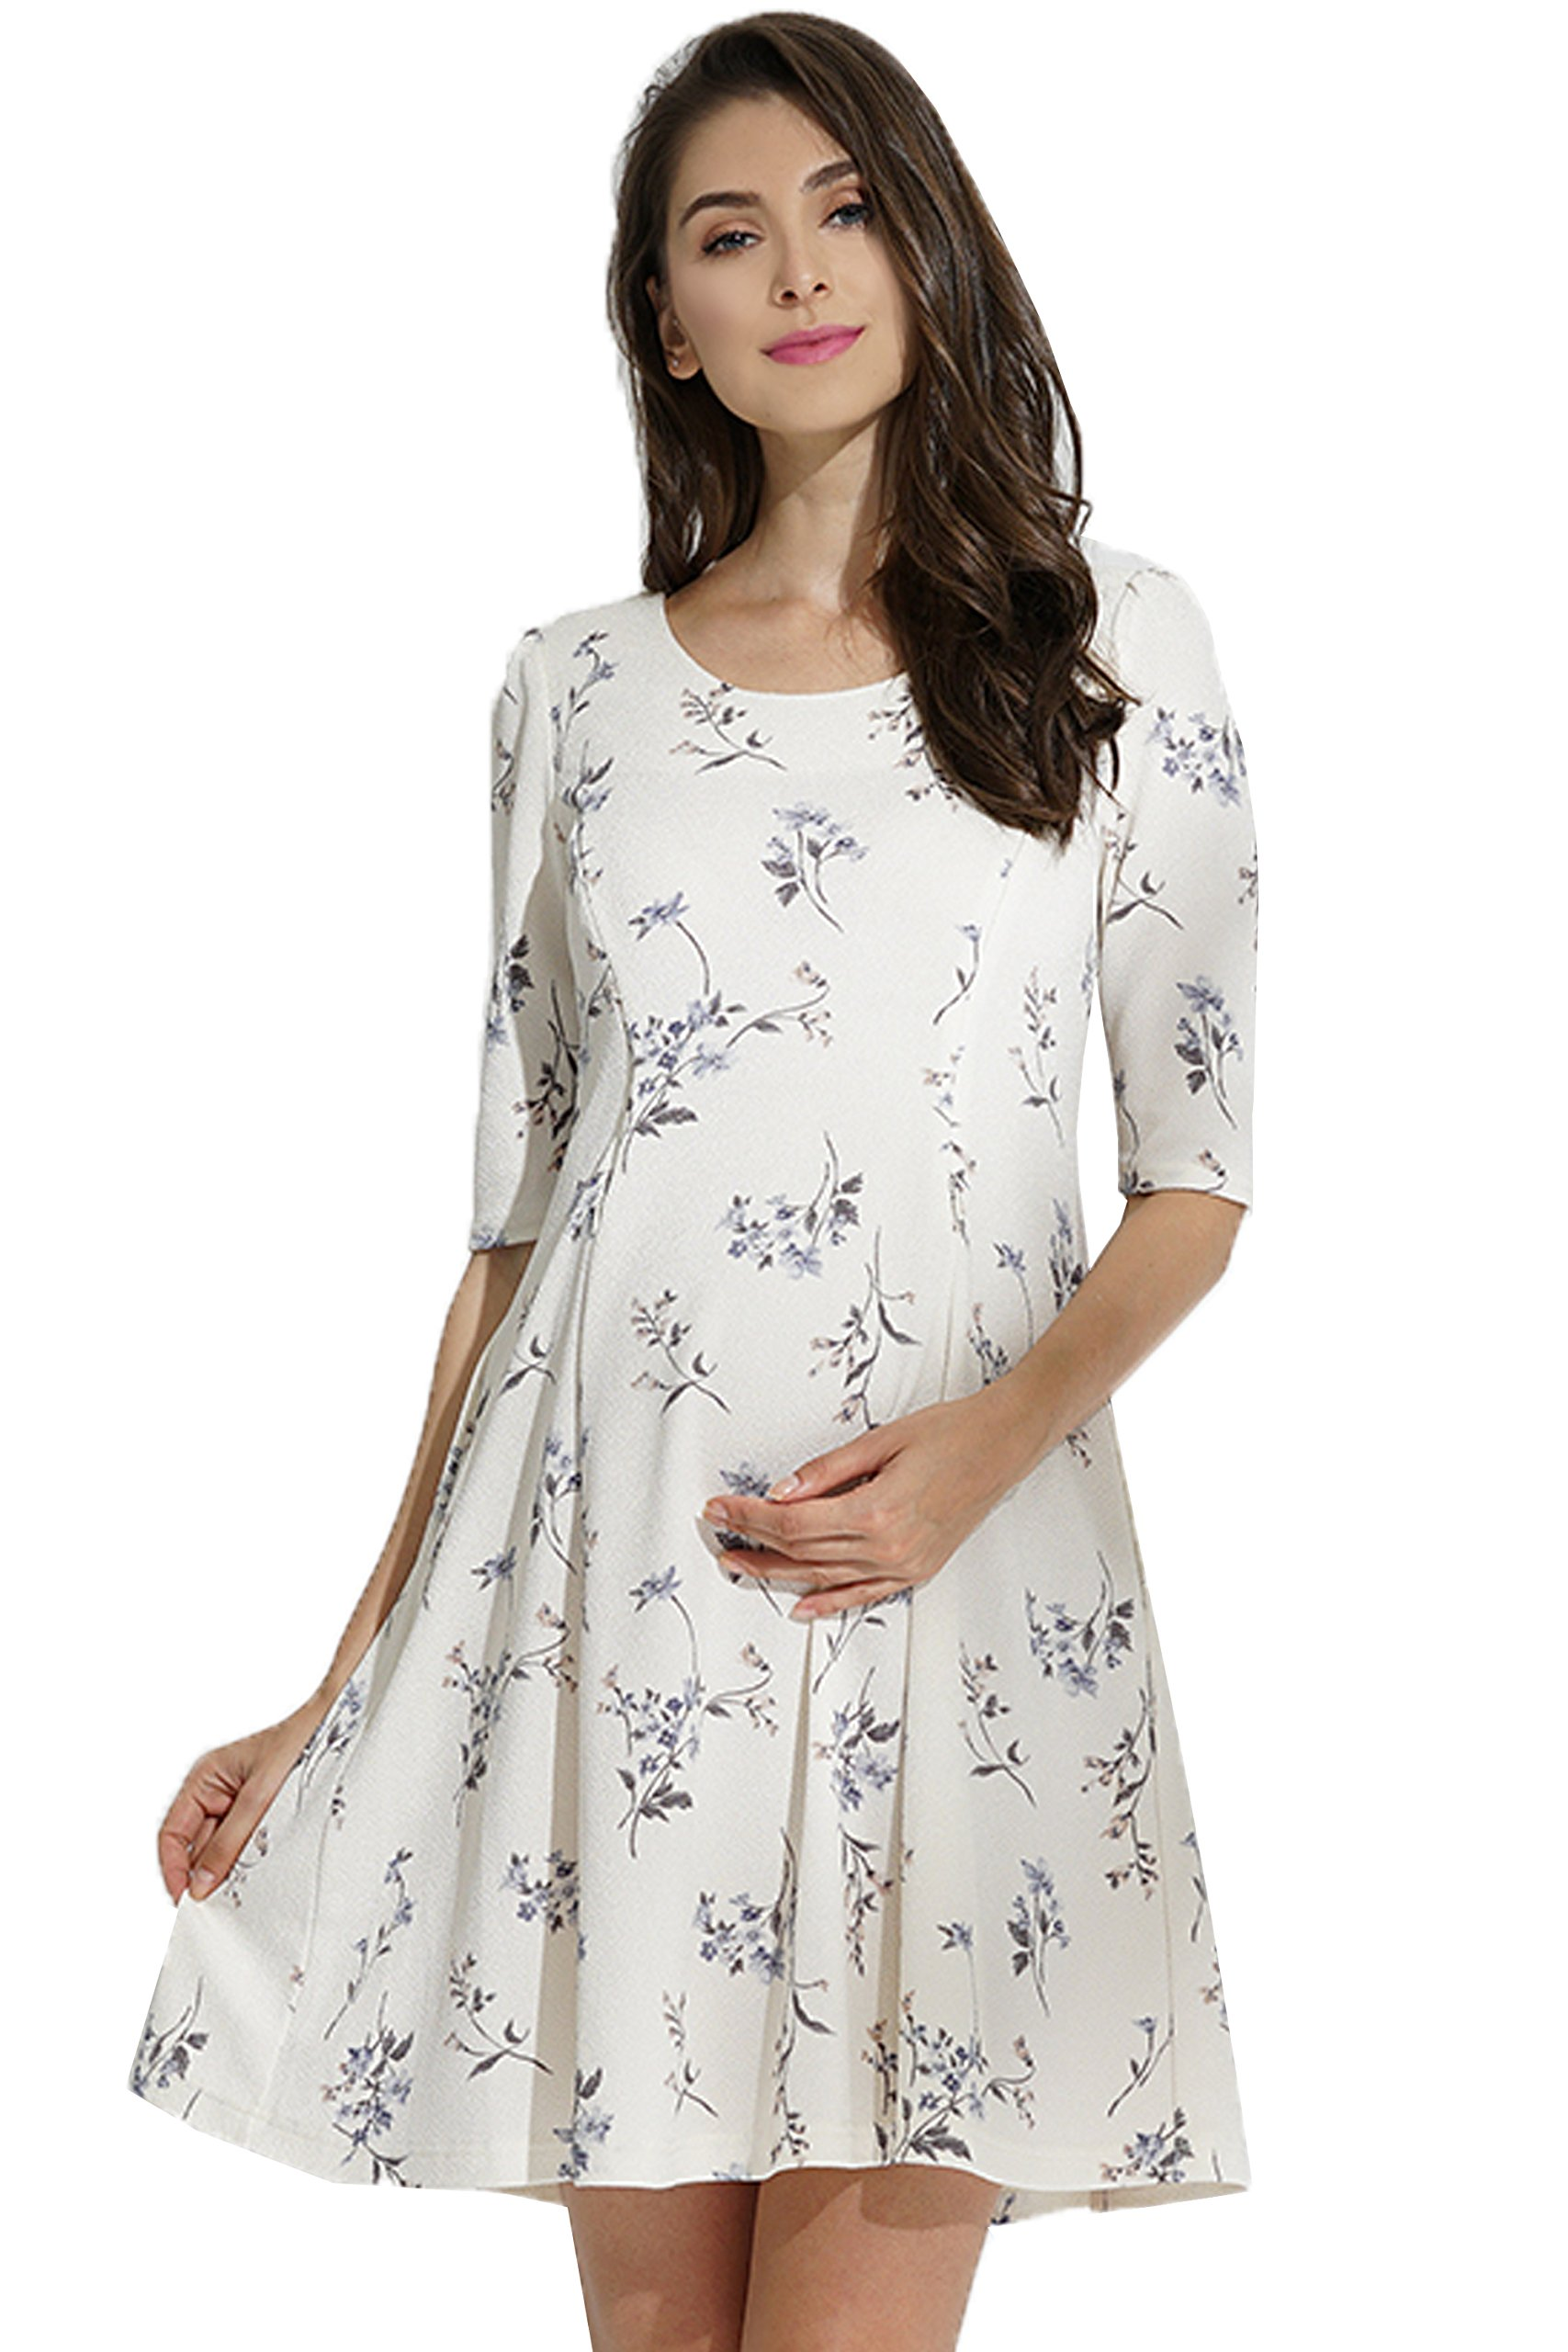 Sweet Mommy Maternity and Nursing Half Length Sleeve Flower Print Flared Dress White M